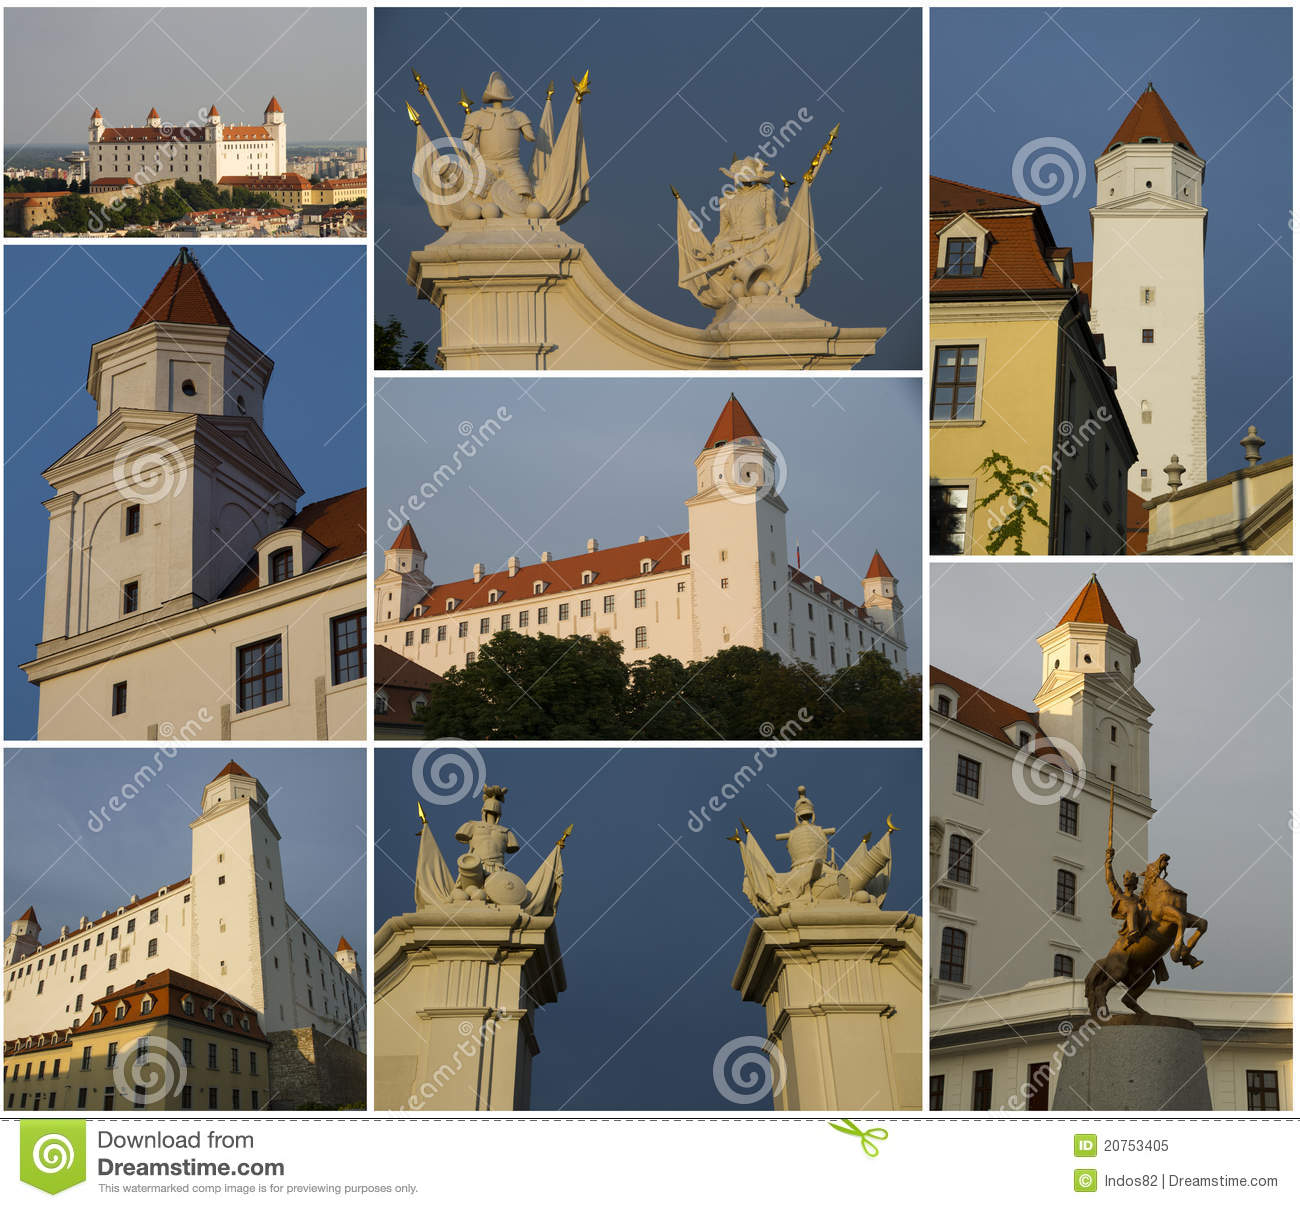 Bratislava castle collage royalty free stock photo image 20753405 - Gloriette fer smeden ...